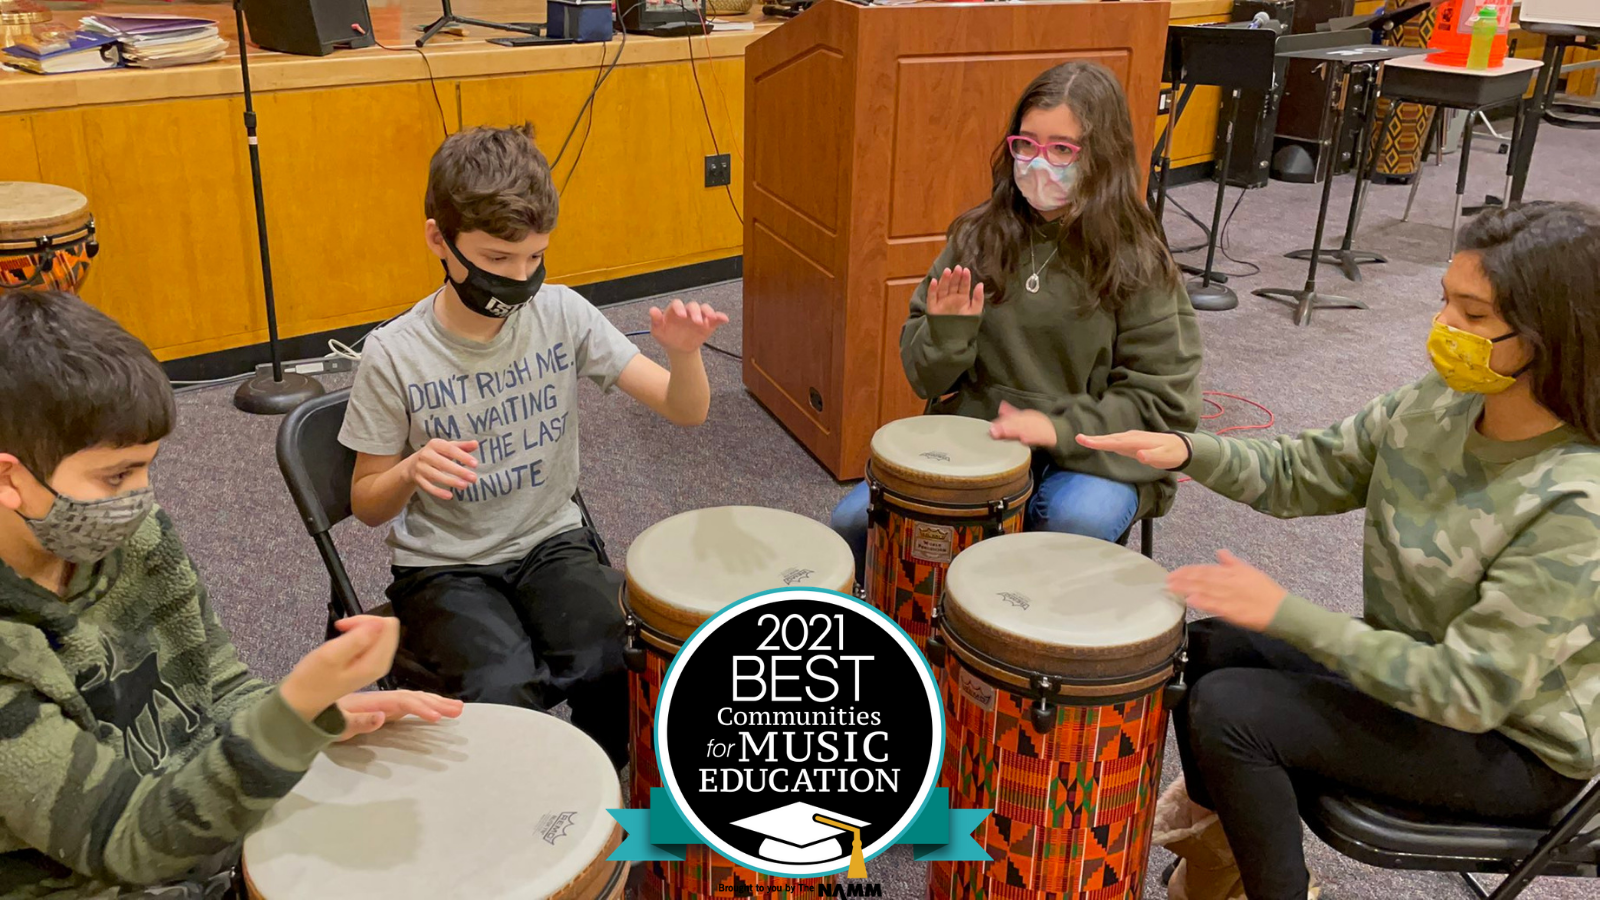 Islip again named one of Best Communities for Music Education